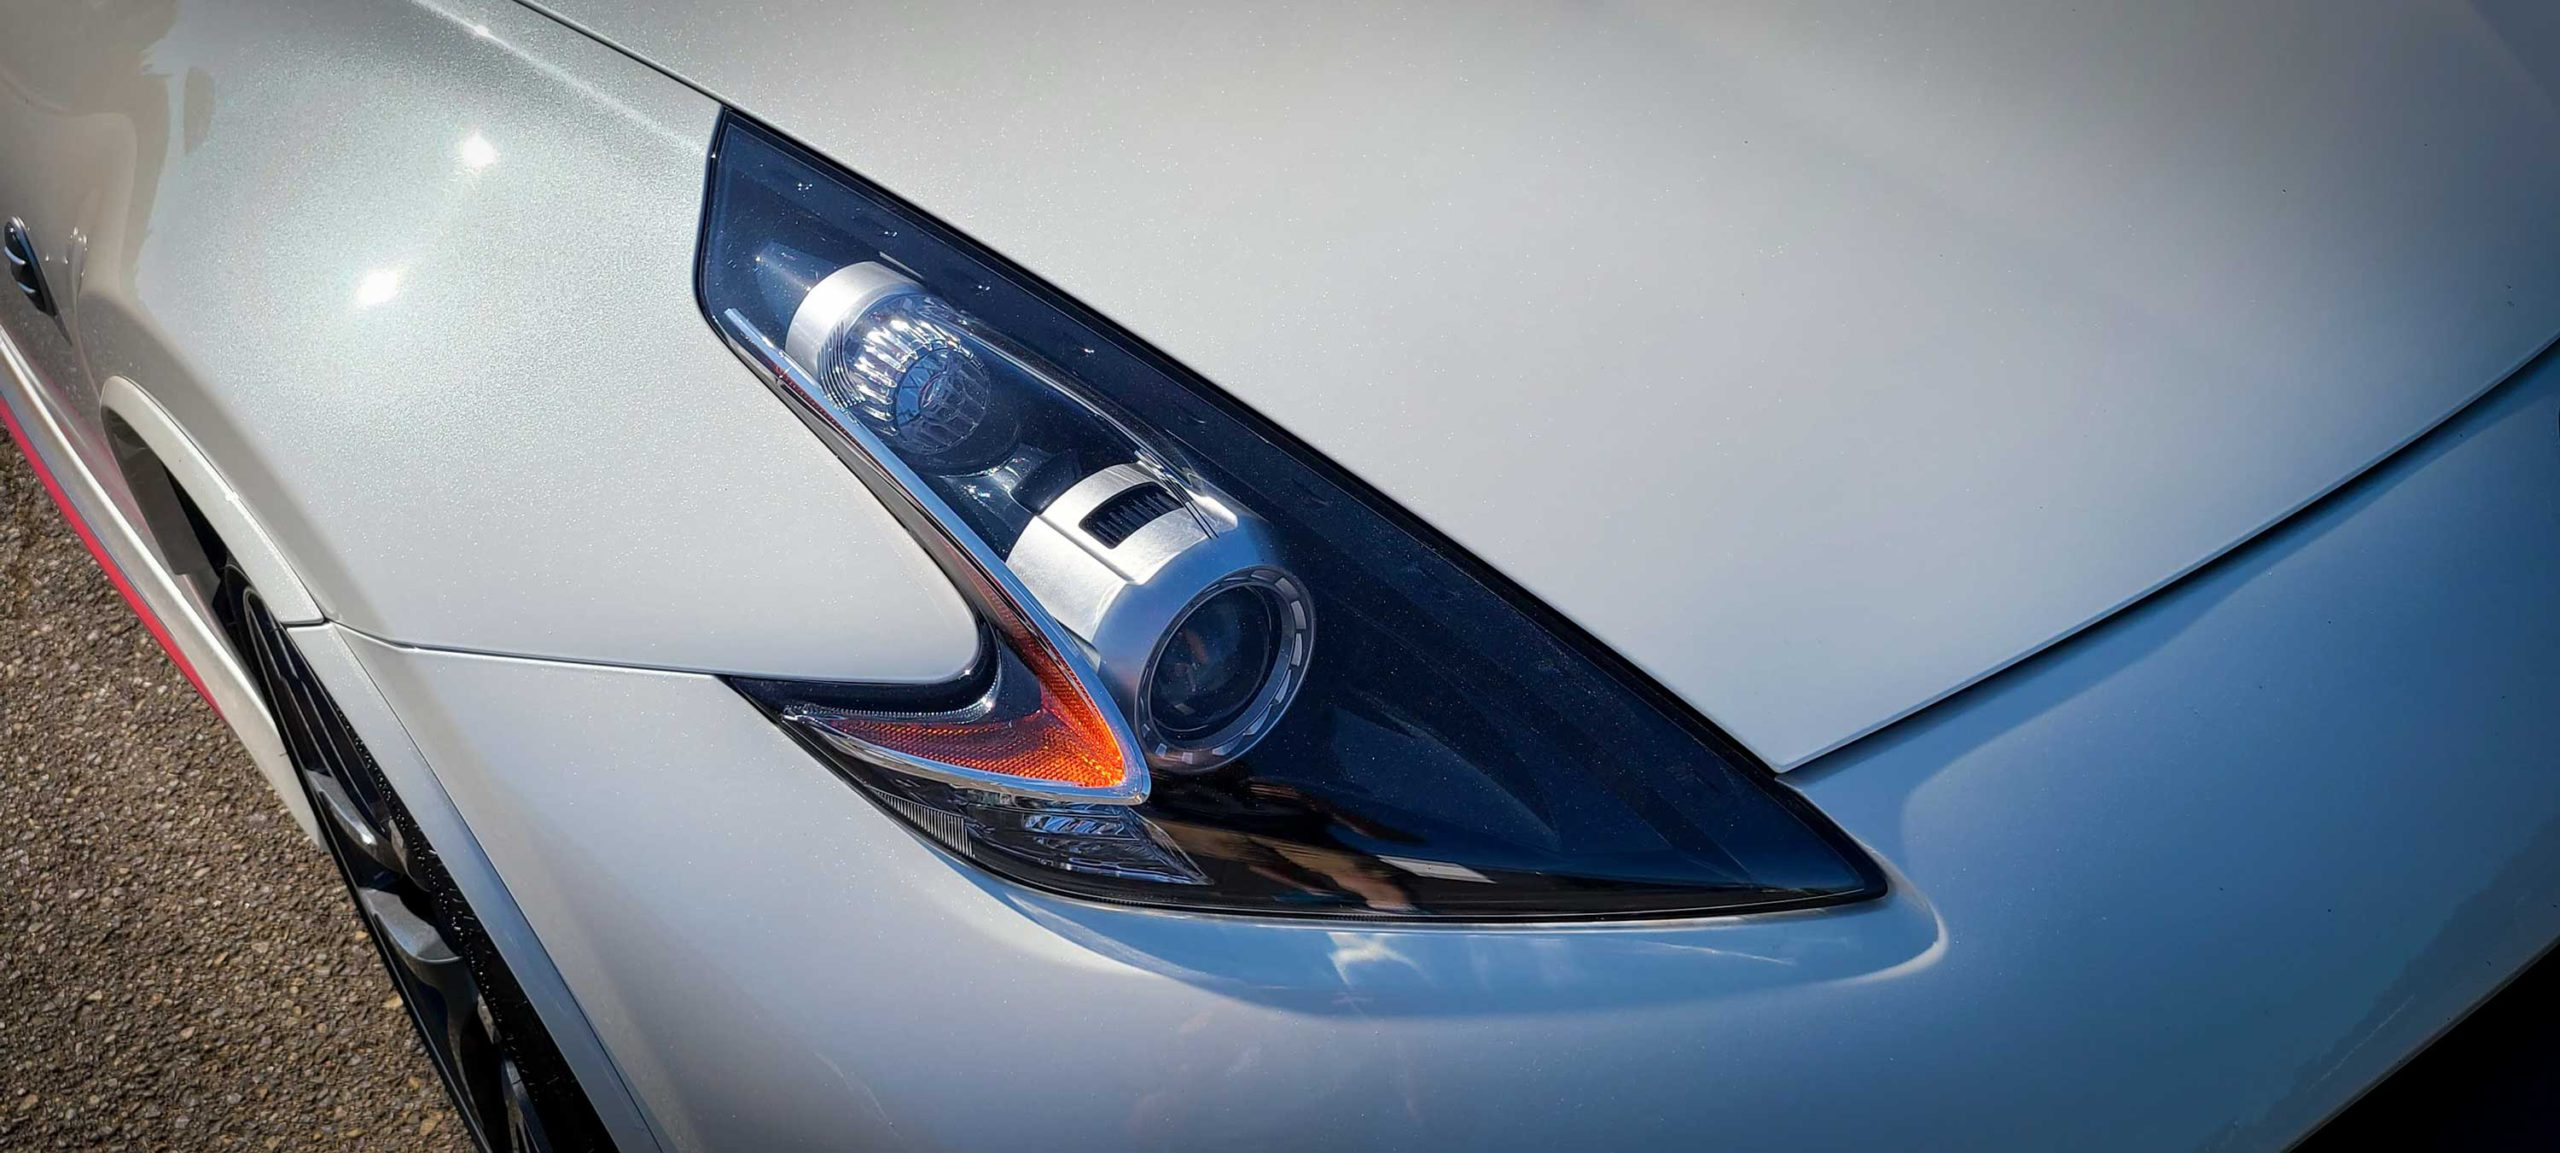 The white Nissan 370Z Nismo's headlights are oversized and sleek.